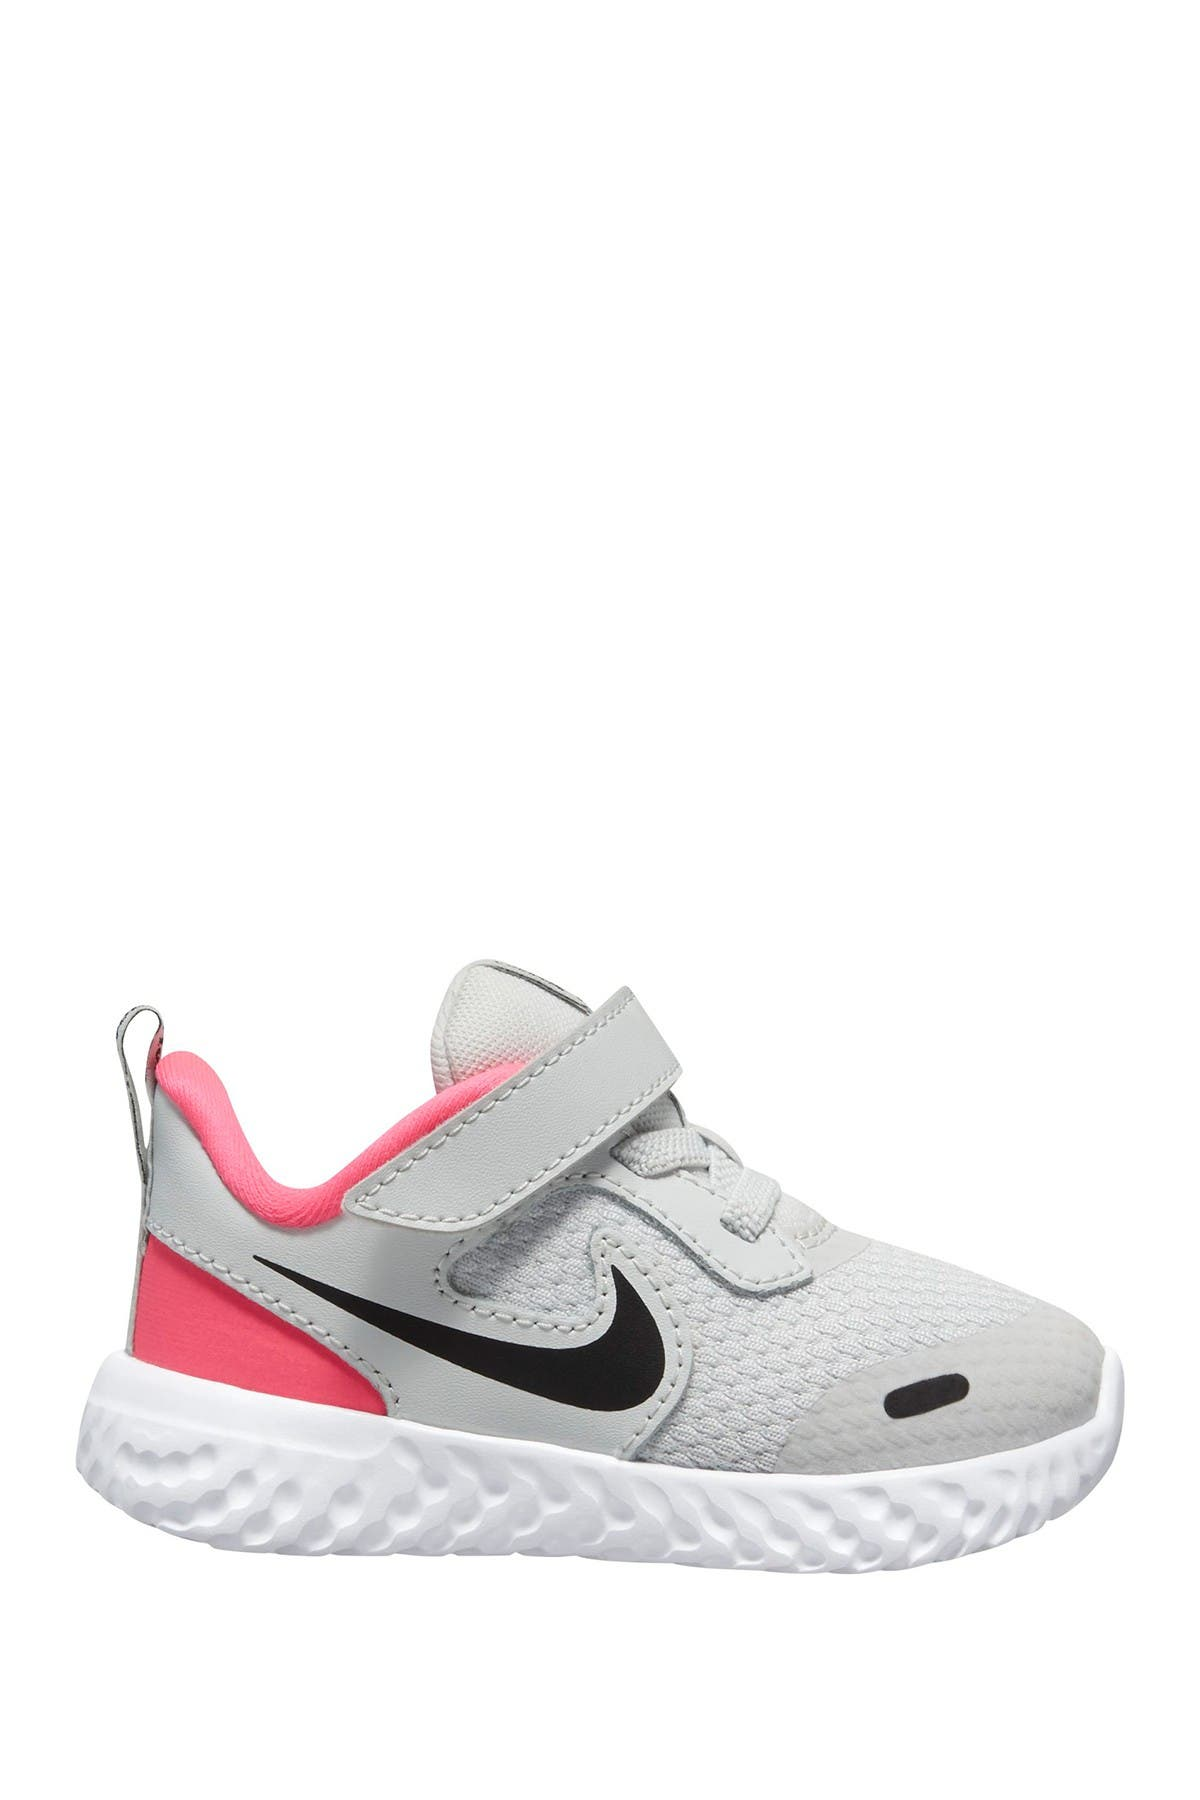 Image of Nike Revolution 5 Sneaker